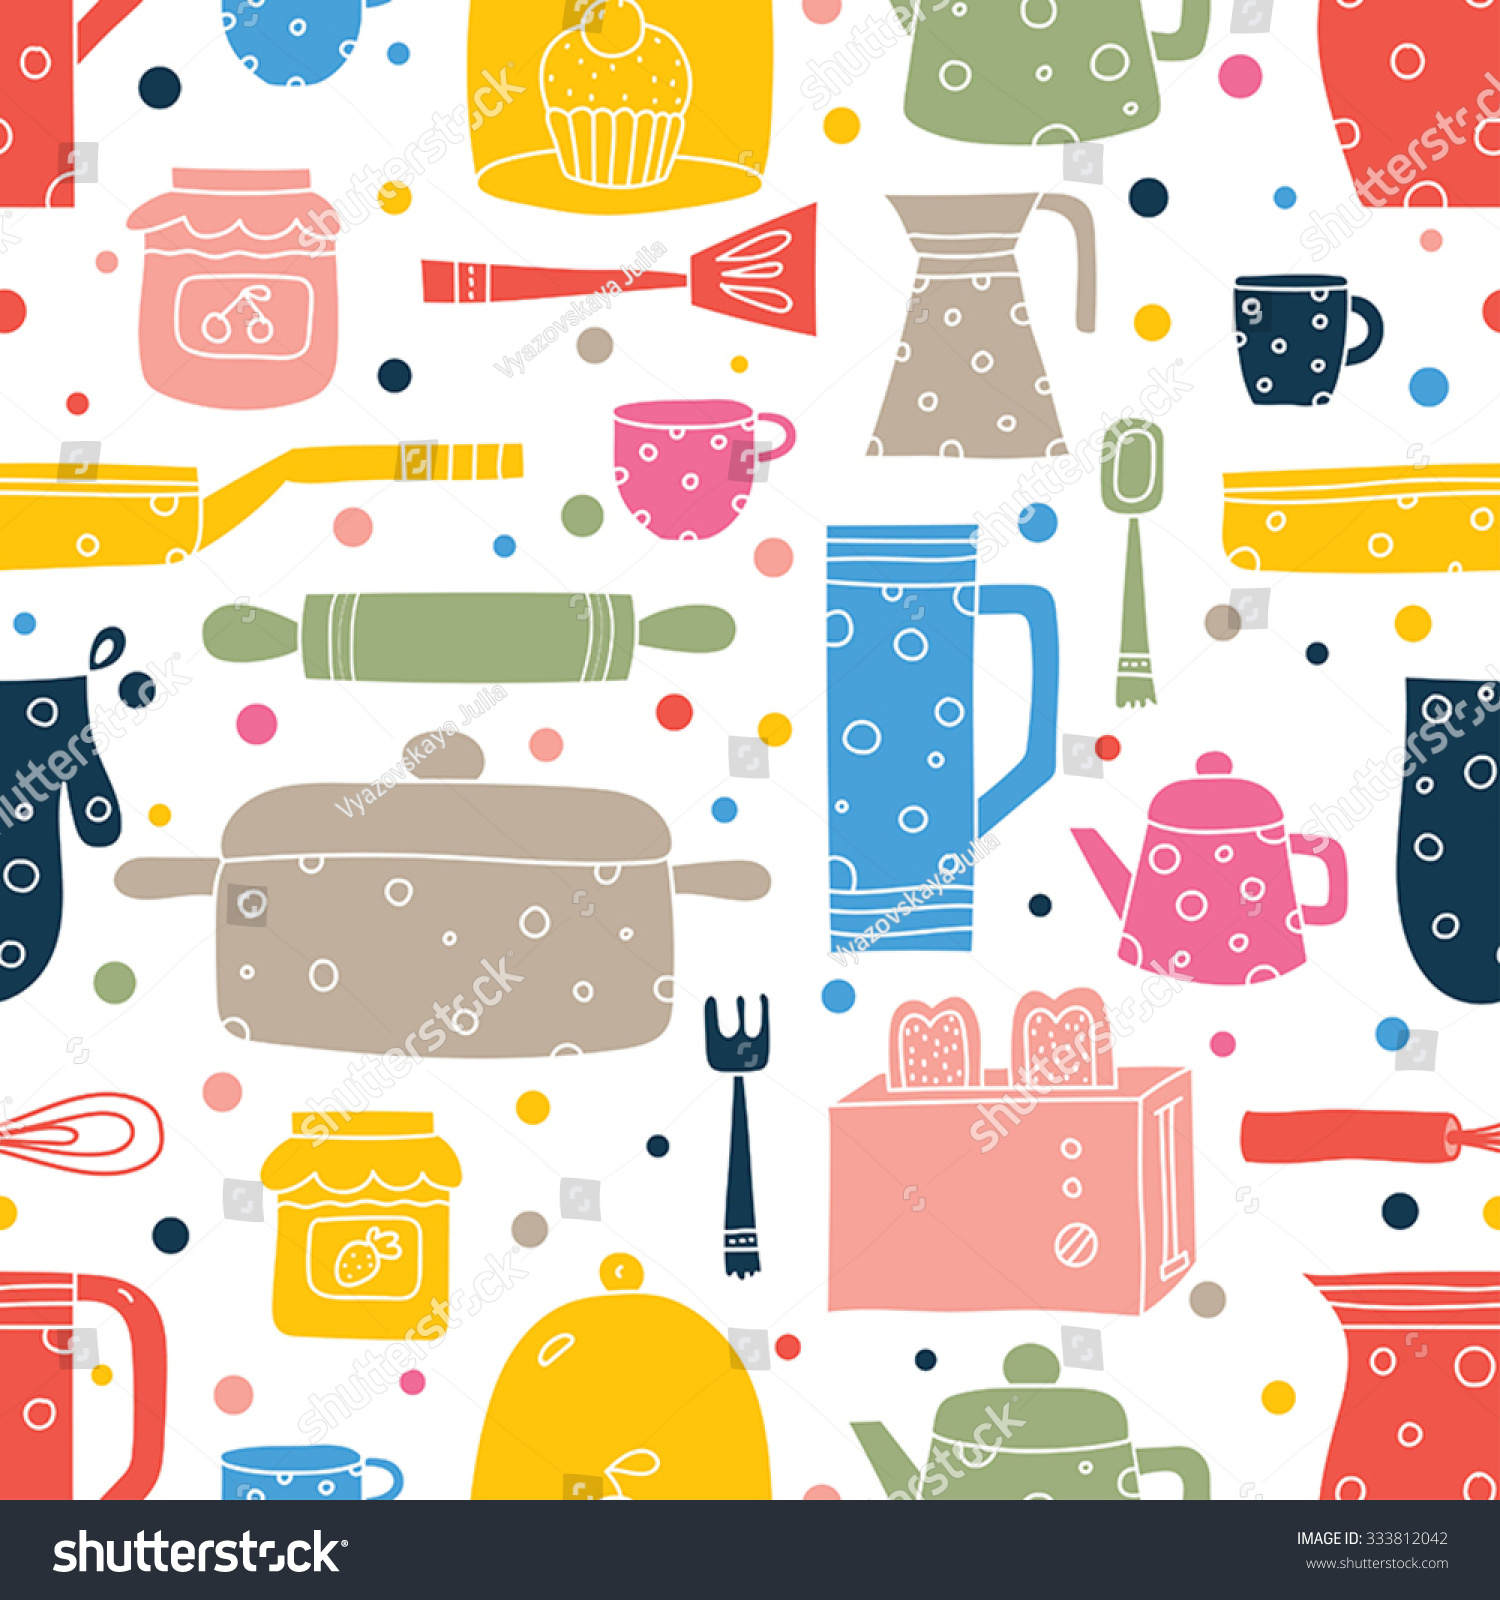 Cute Kitchen Vector Seamless PatternSeamless Pattern Can Be Used For Wallpaper Fills